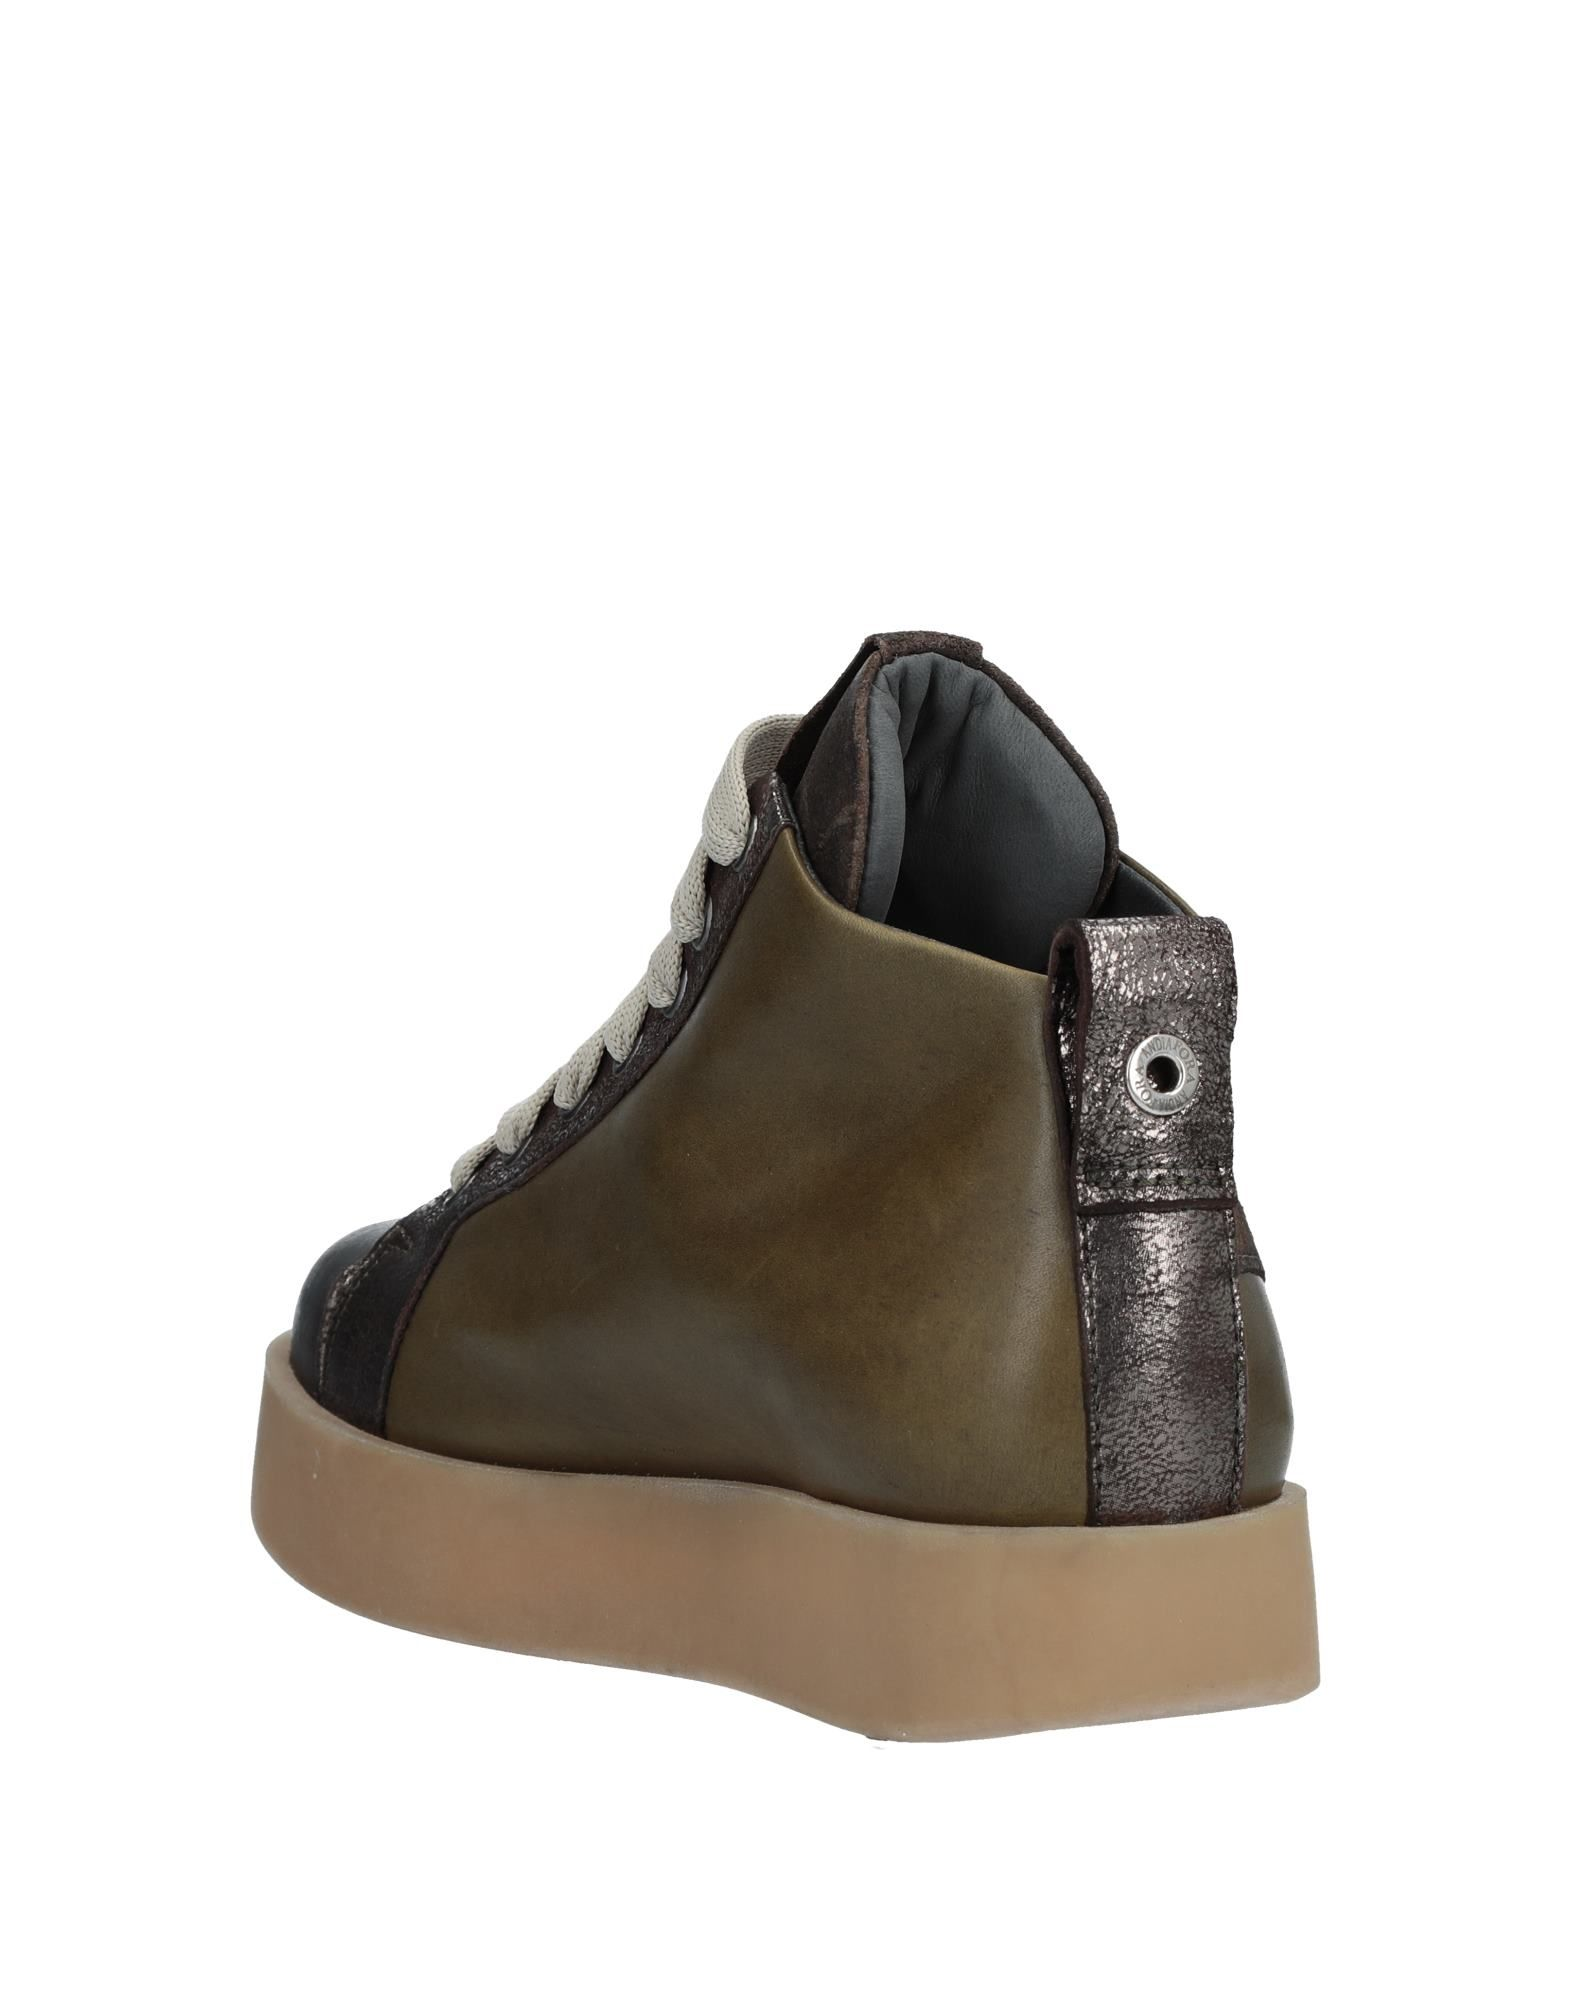 Andìa Fora Sneakers - - - Women Andìa Fora Sneakers online on  Canada - 11531005RR 0974c1